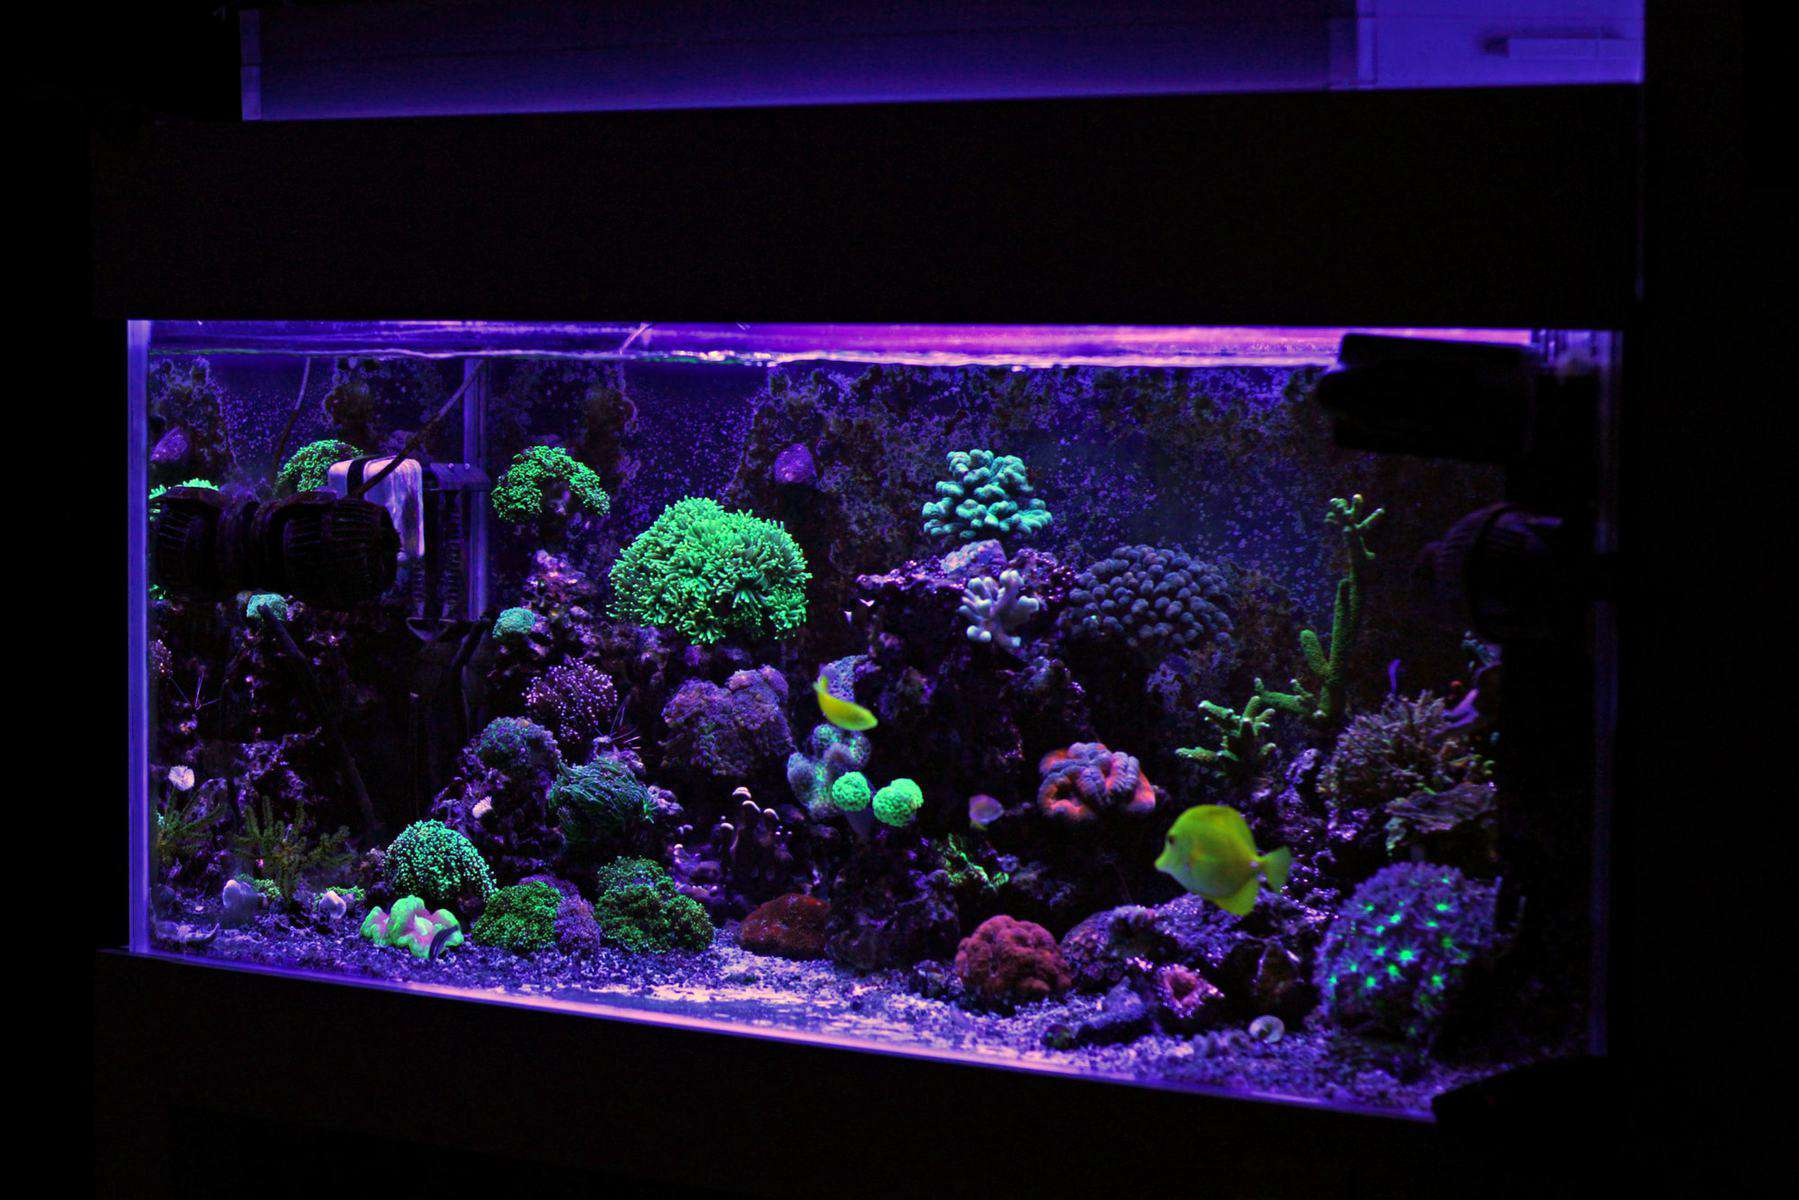 40 gallon breeder tank with saltwater coral reefs